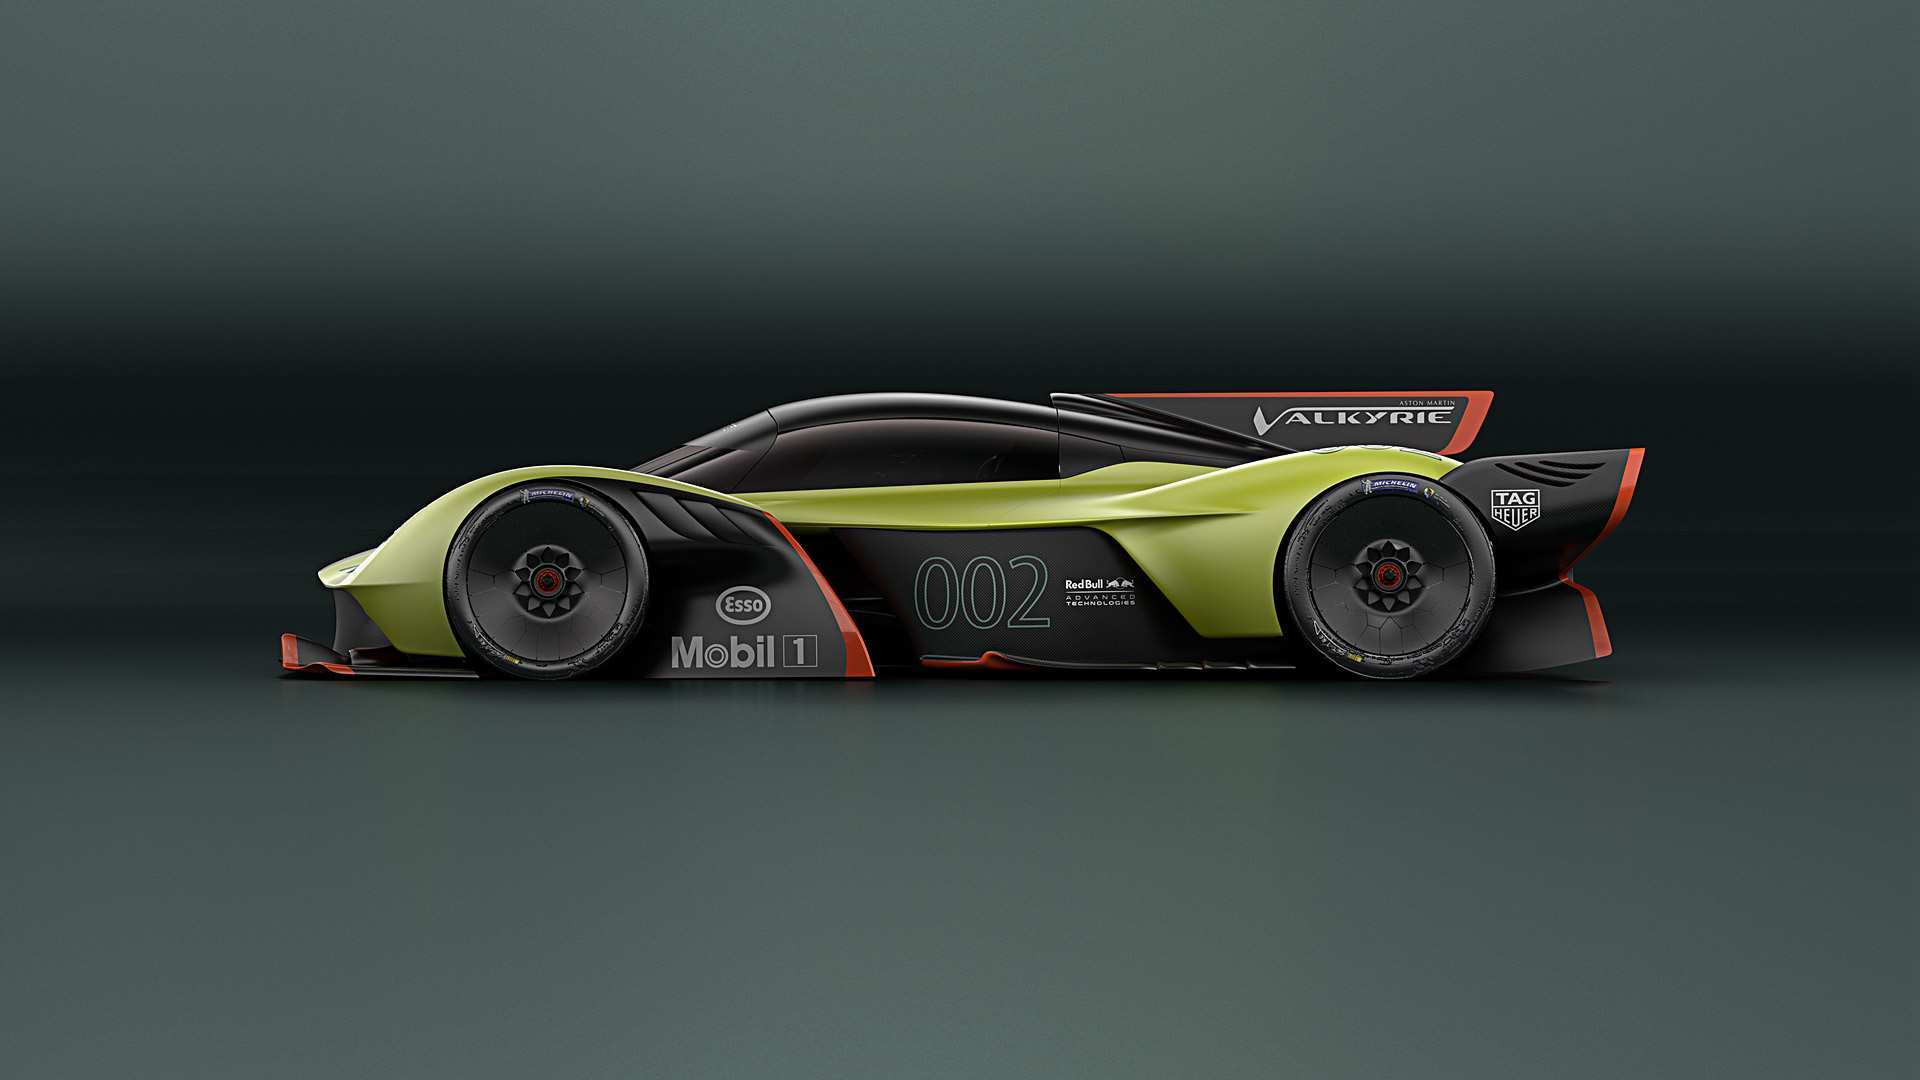 63 Great 2020 Aston Martin Valkyrie Exterior and Interior for 2020 Aston Martin Valkyrie